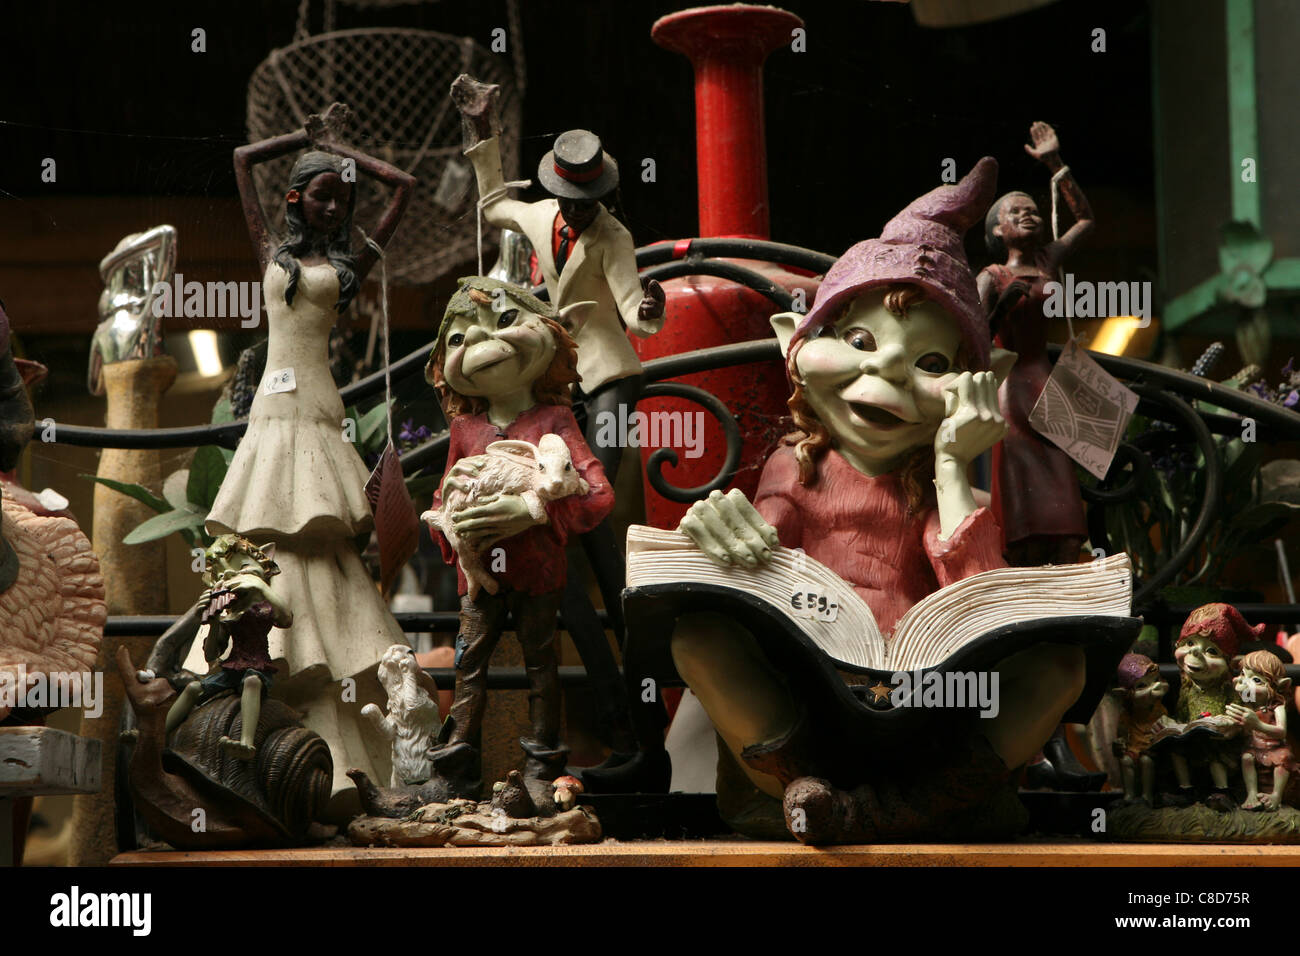 Garden statuette of dwarfs at the flower market on Place Louis-Lepine in Paris, France. - Stock Image